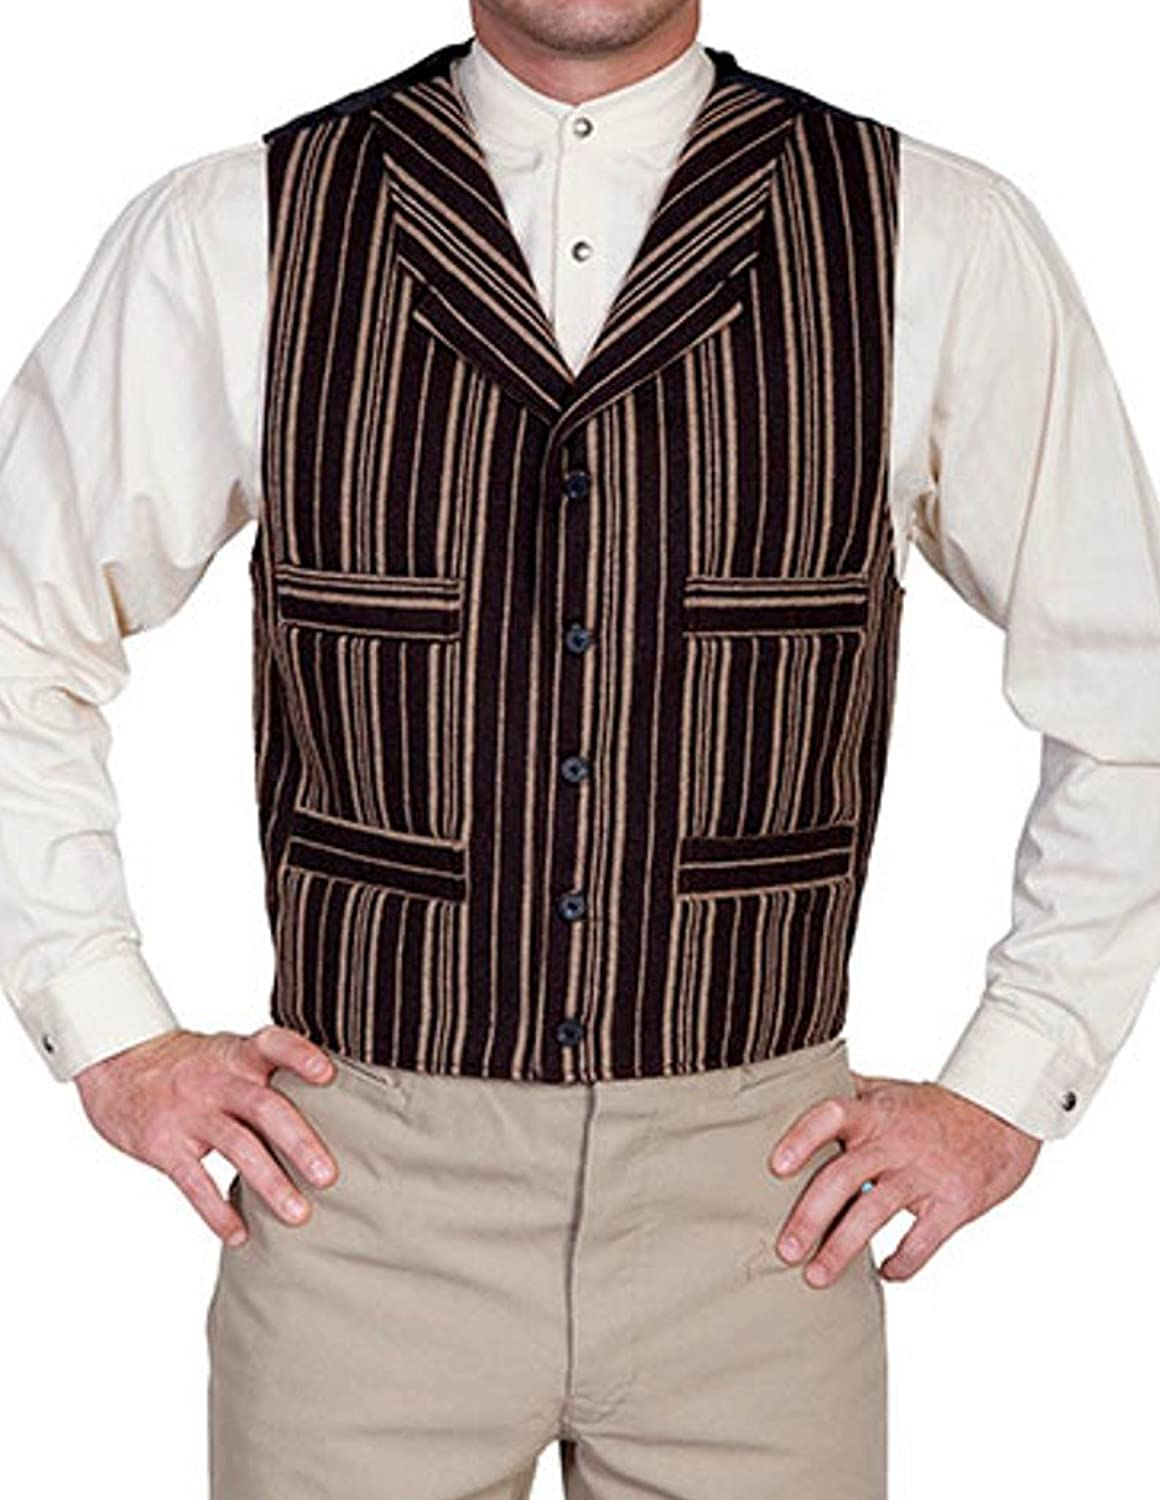 Men's Vintage Inspired Vests Wahmaker By Scully Mens Wahmaker Four Pocket Wool Blend Vest $79.85 AT vintagedancer.com